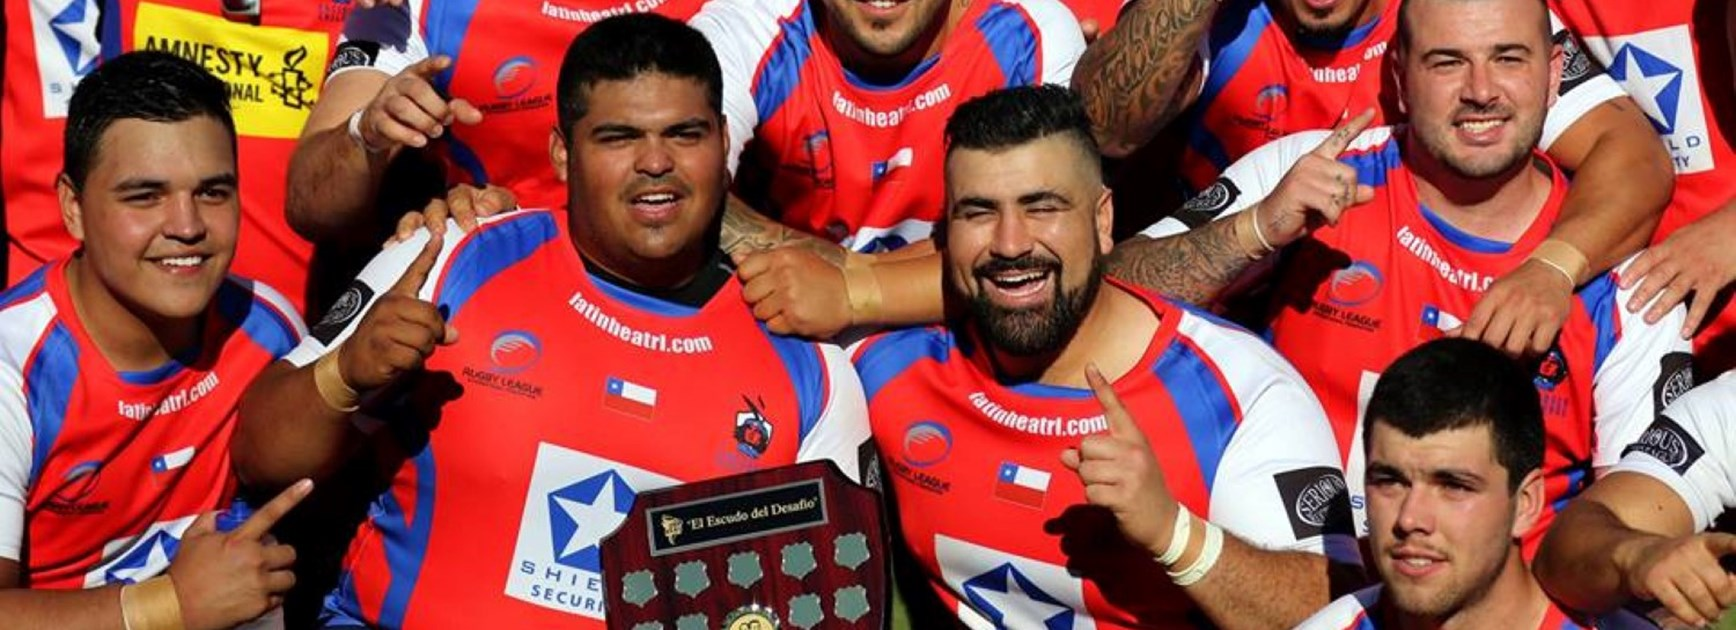 Chile's ground breakers have a Brisbane flavour